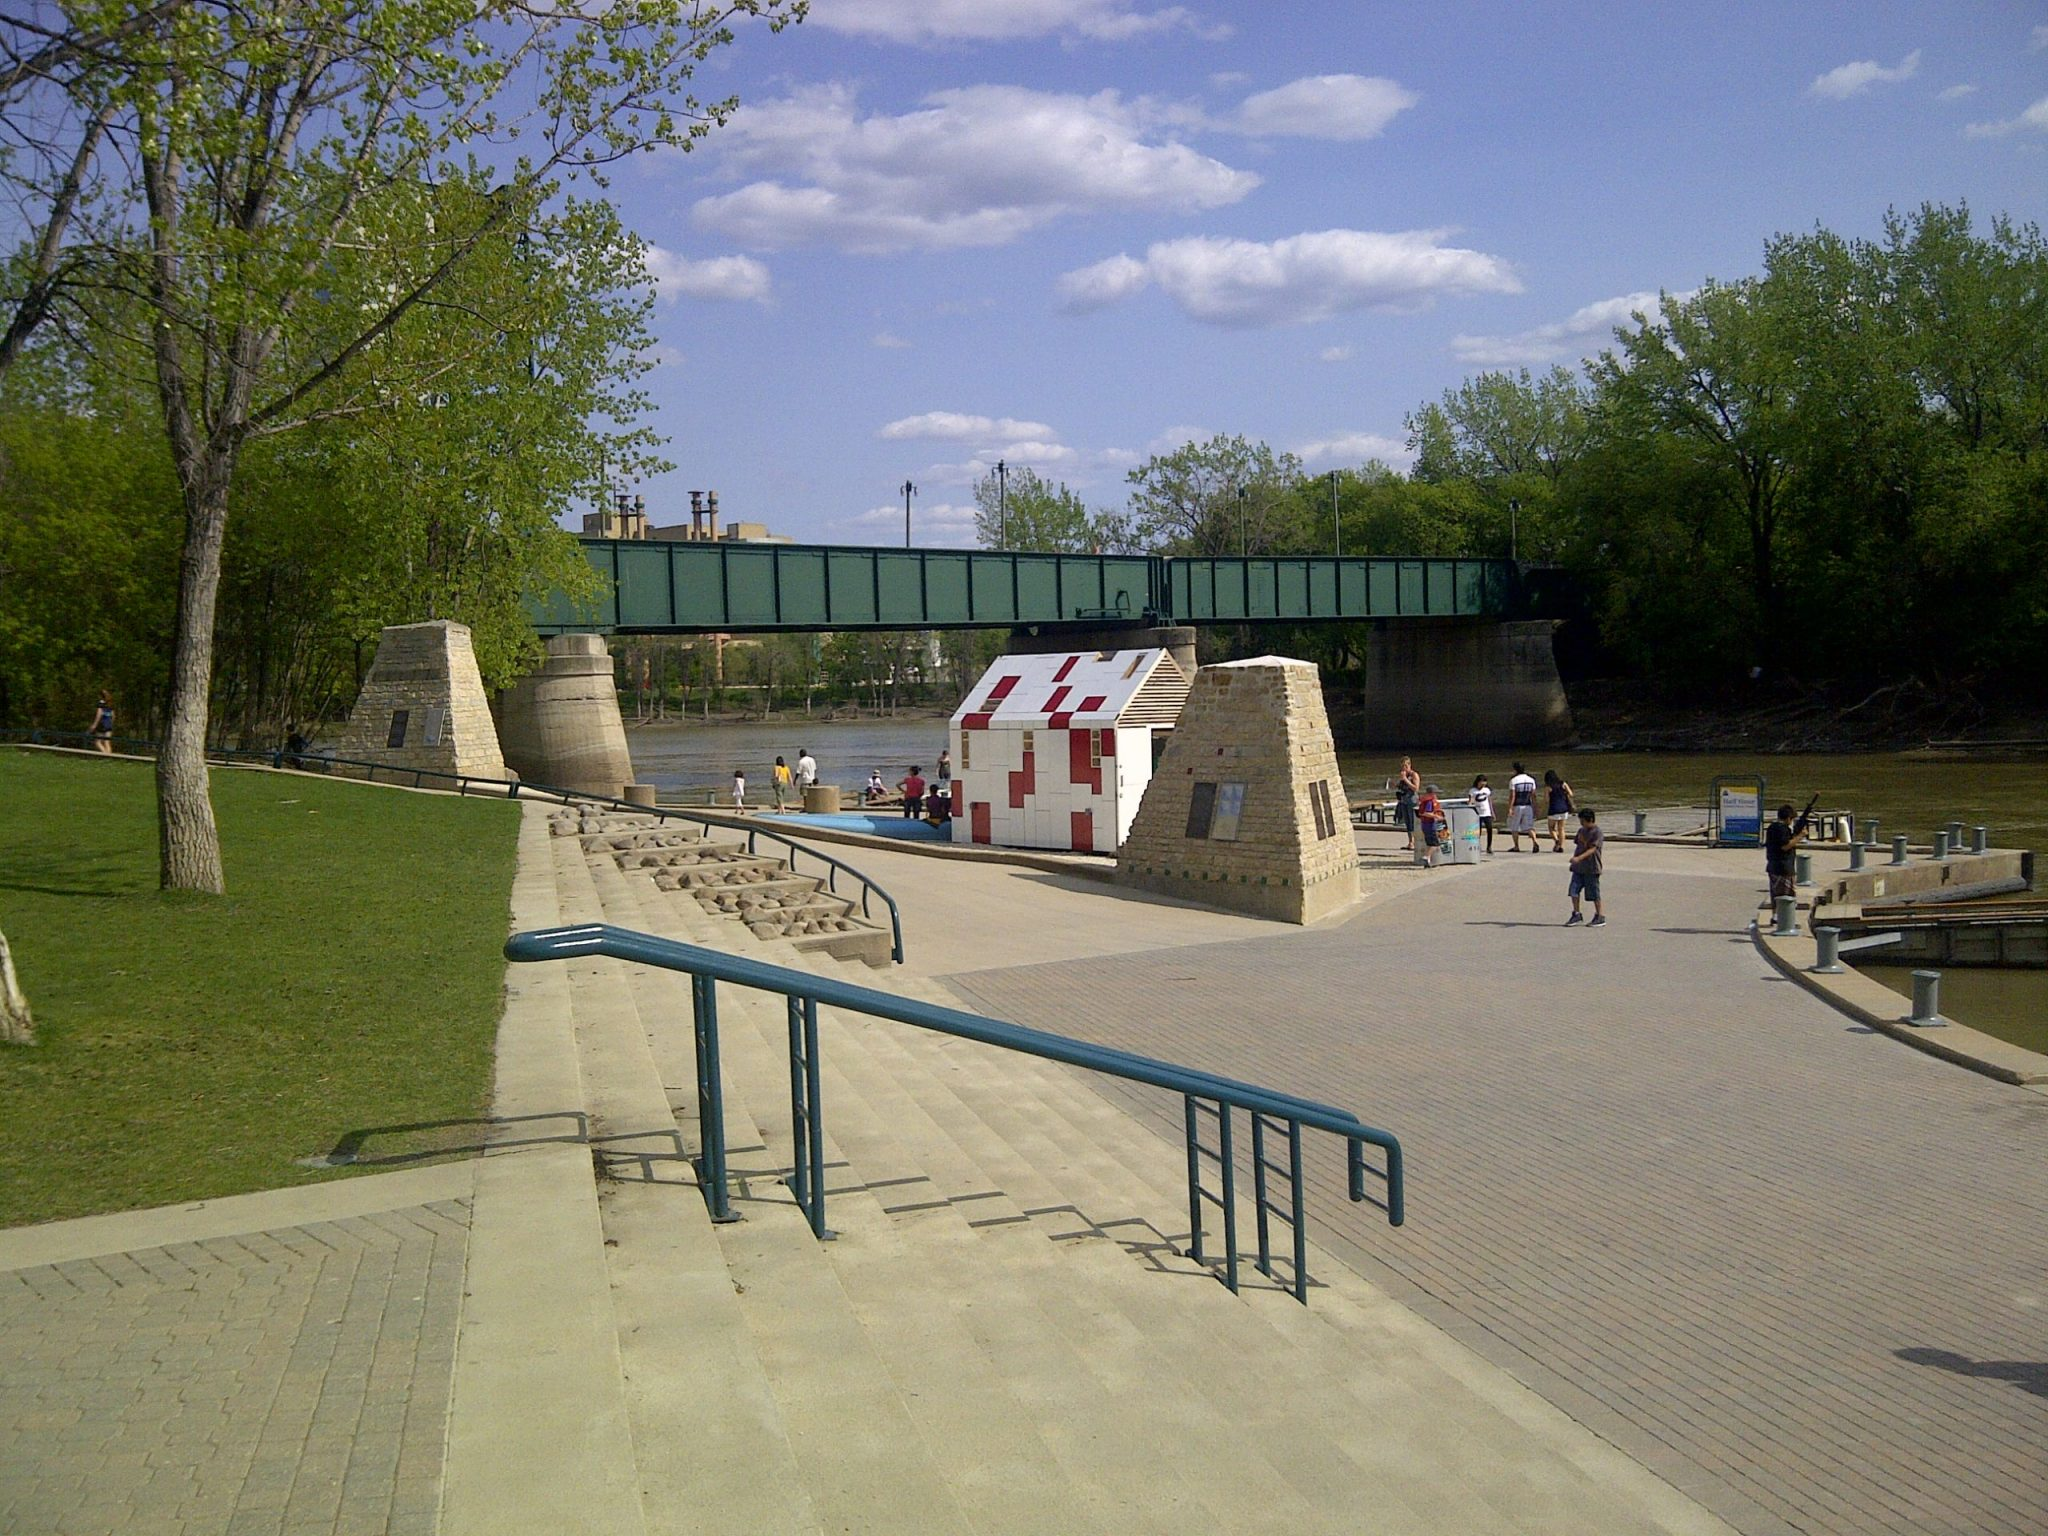 Visiting the Forks is one of the best things to do in Winnipeg